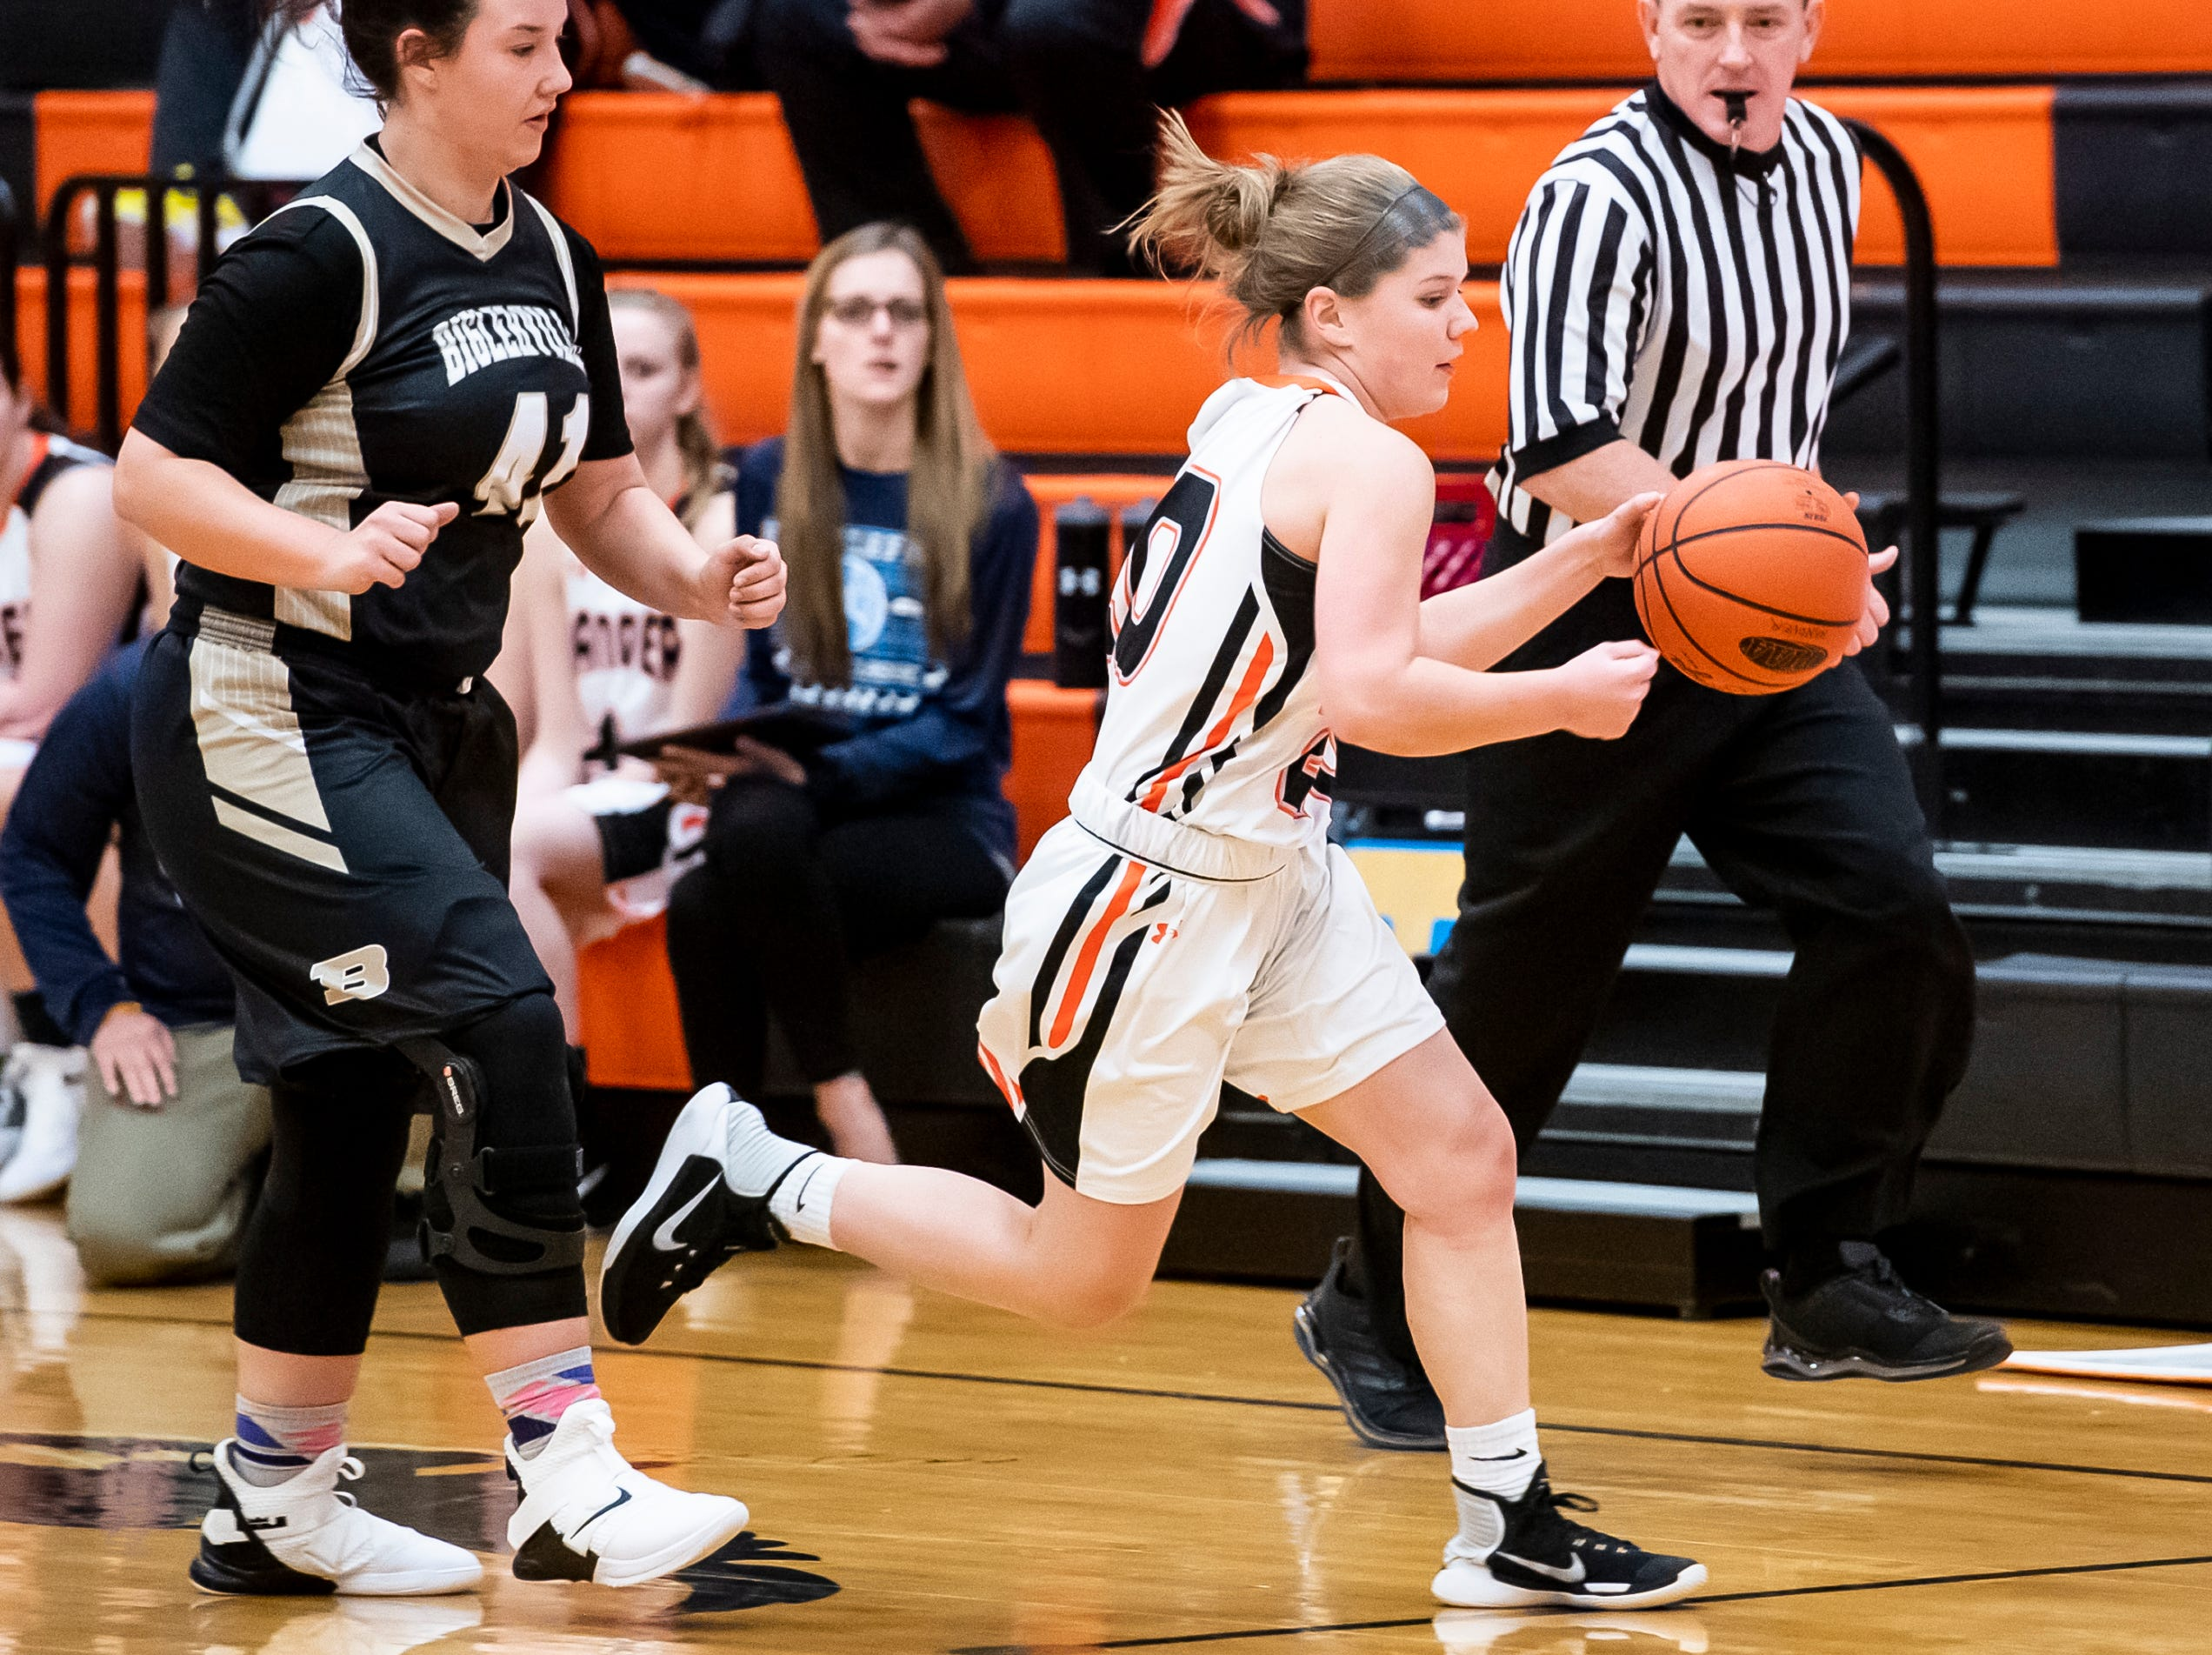 Hanover's Saige Stevens dribbles down the court during play against Biglerville in the championship game of the Hanover Holiday Classic on Friday, December 28, 2018. Hanover won 30-20.